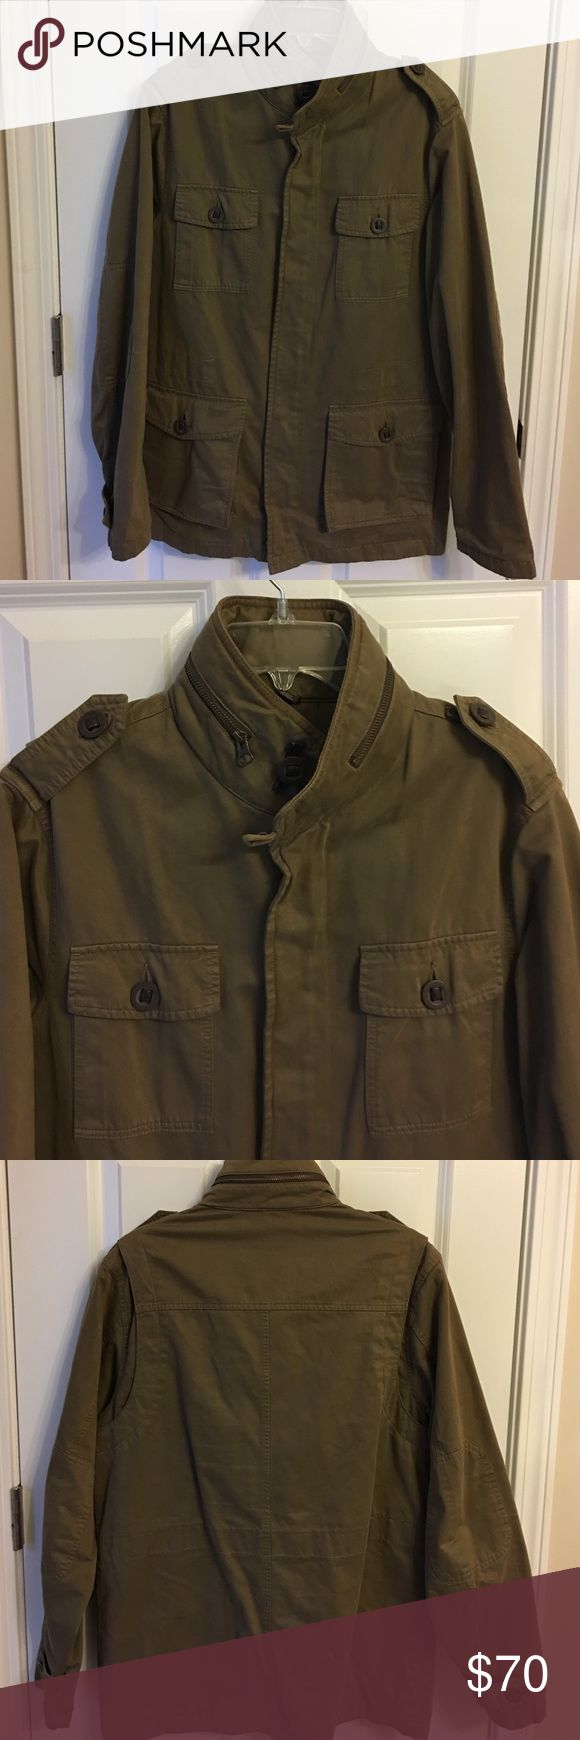 Tasso Elba men's jacket Olive green. Adjustable drawstring waist. Lightly used, looks brand new. Has a hood that comes out of zipper around the neck Tasso Elba Jackets & Coats Lightweight & Shirt Jackets